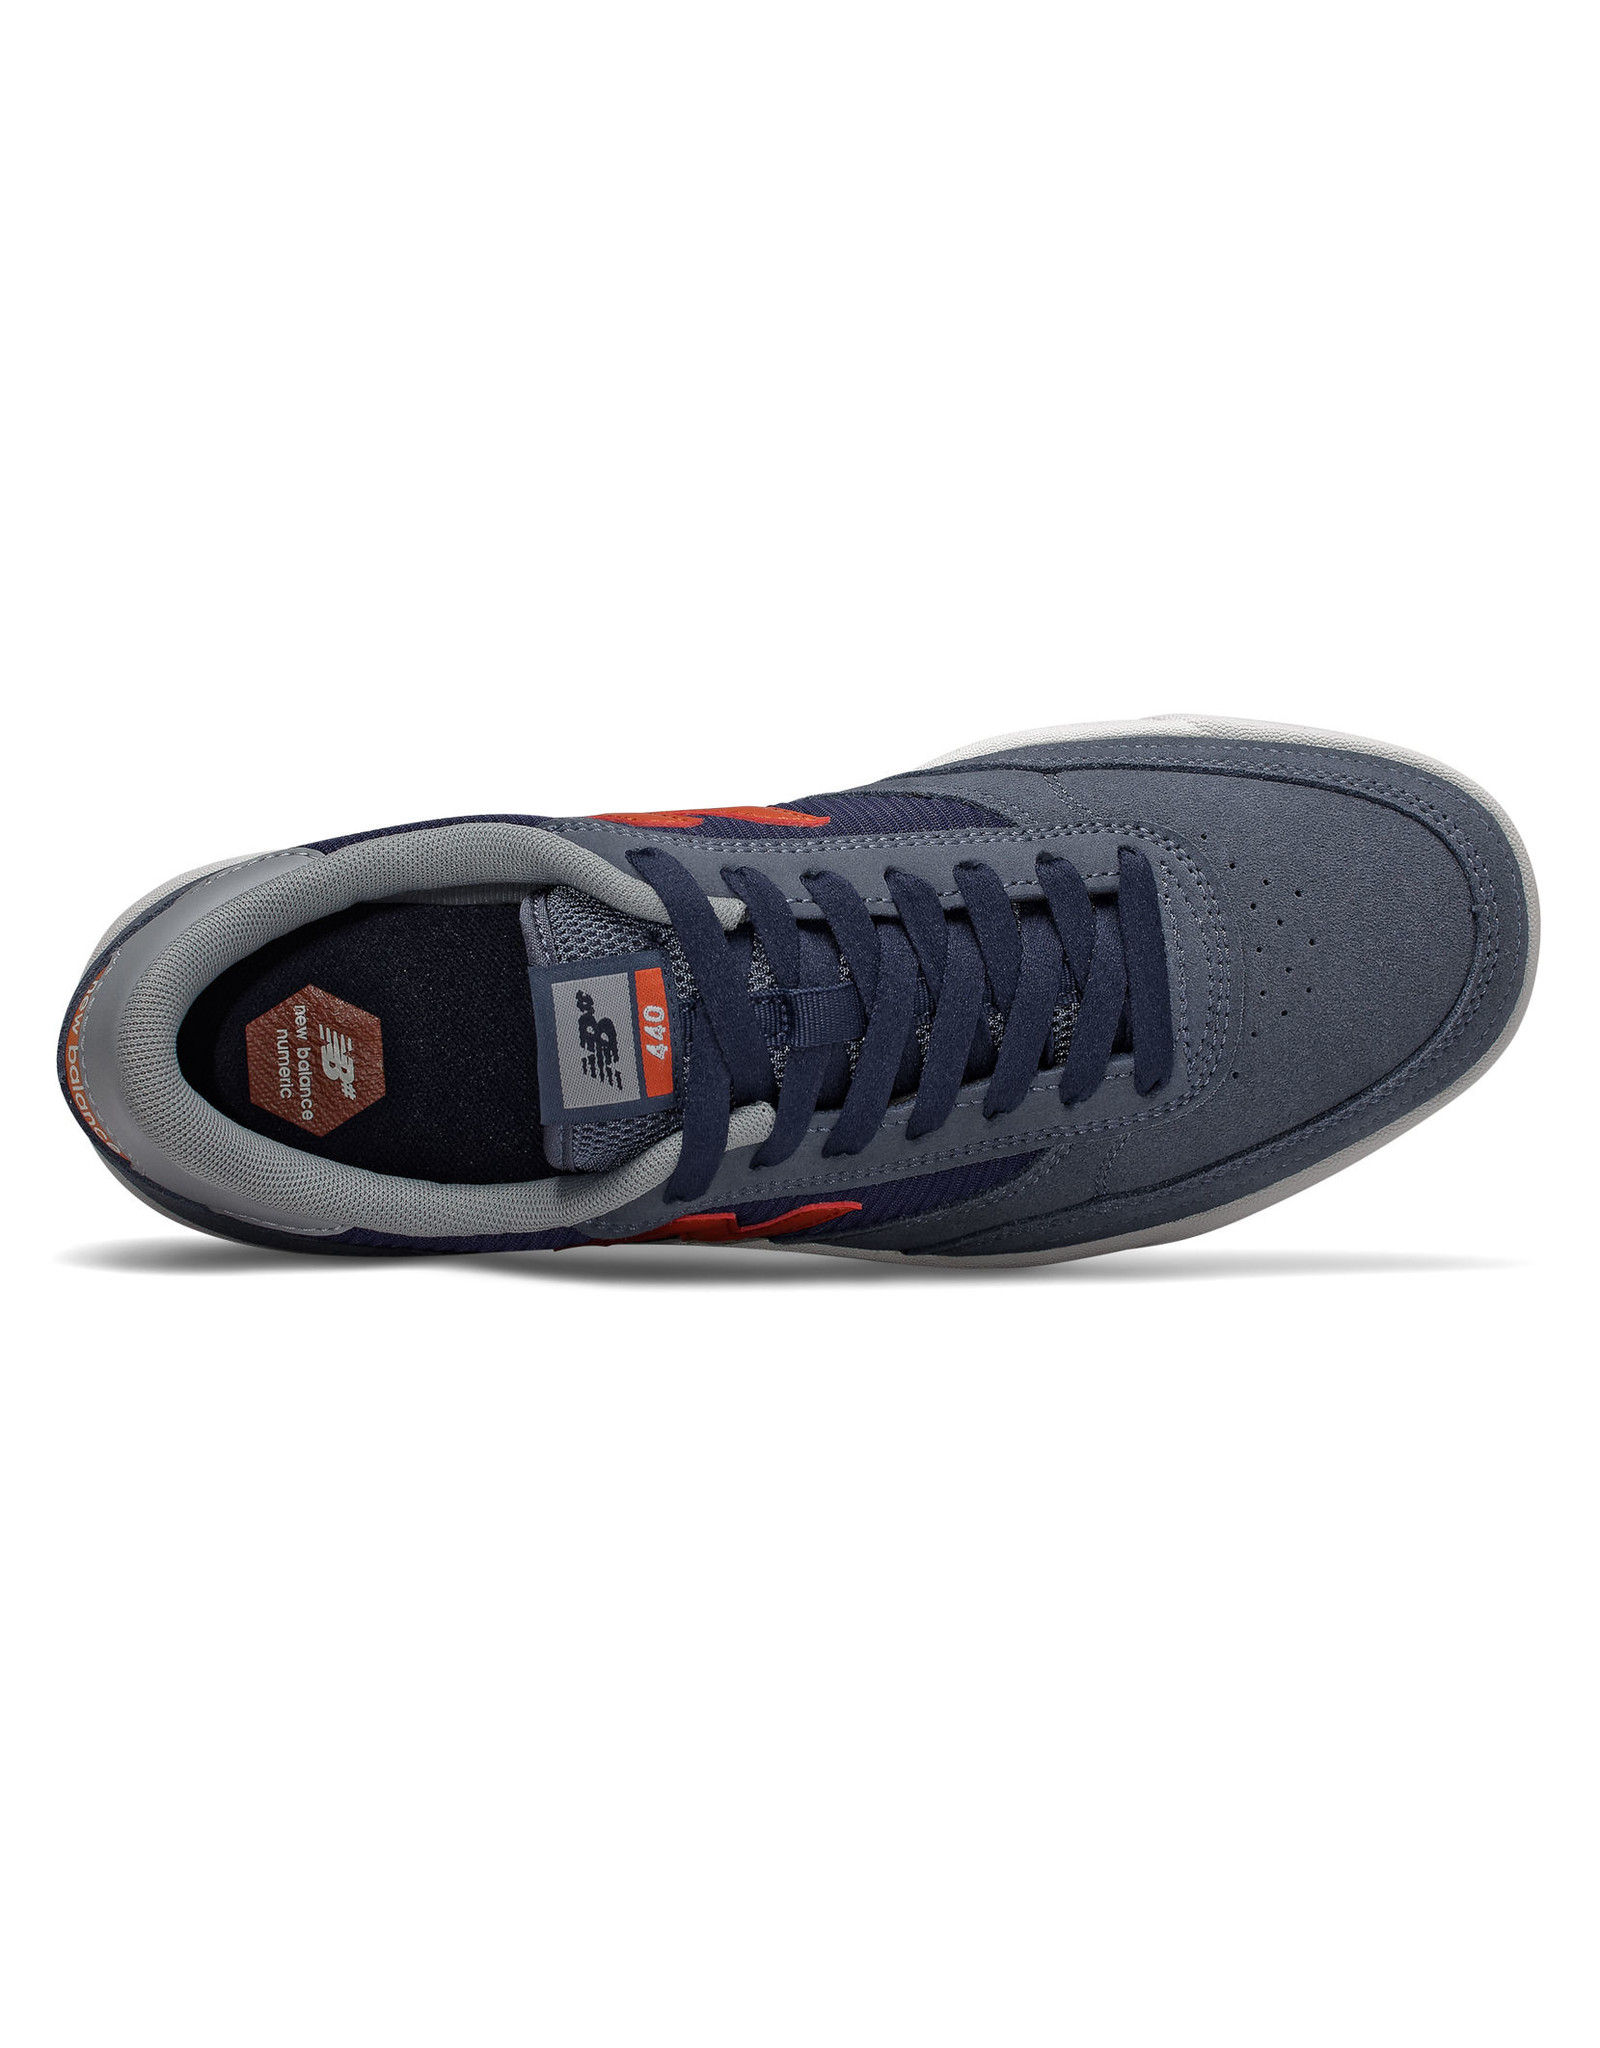 NEW BALANCE NEW BALANCE - 440 - NAVY/RUST